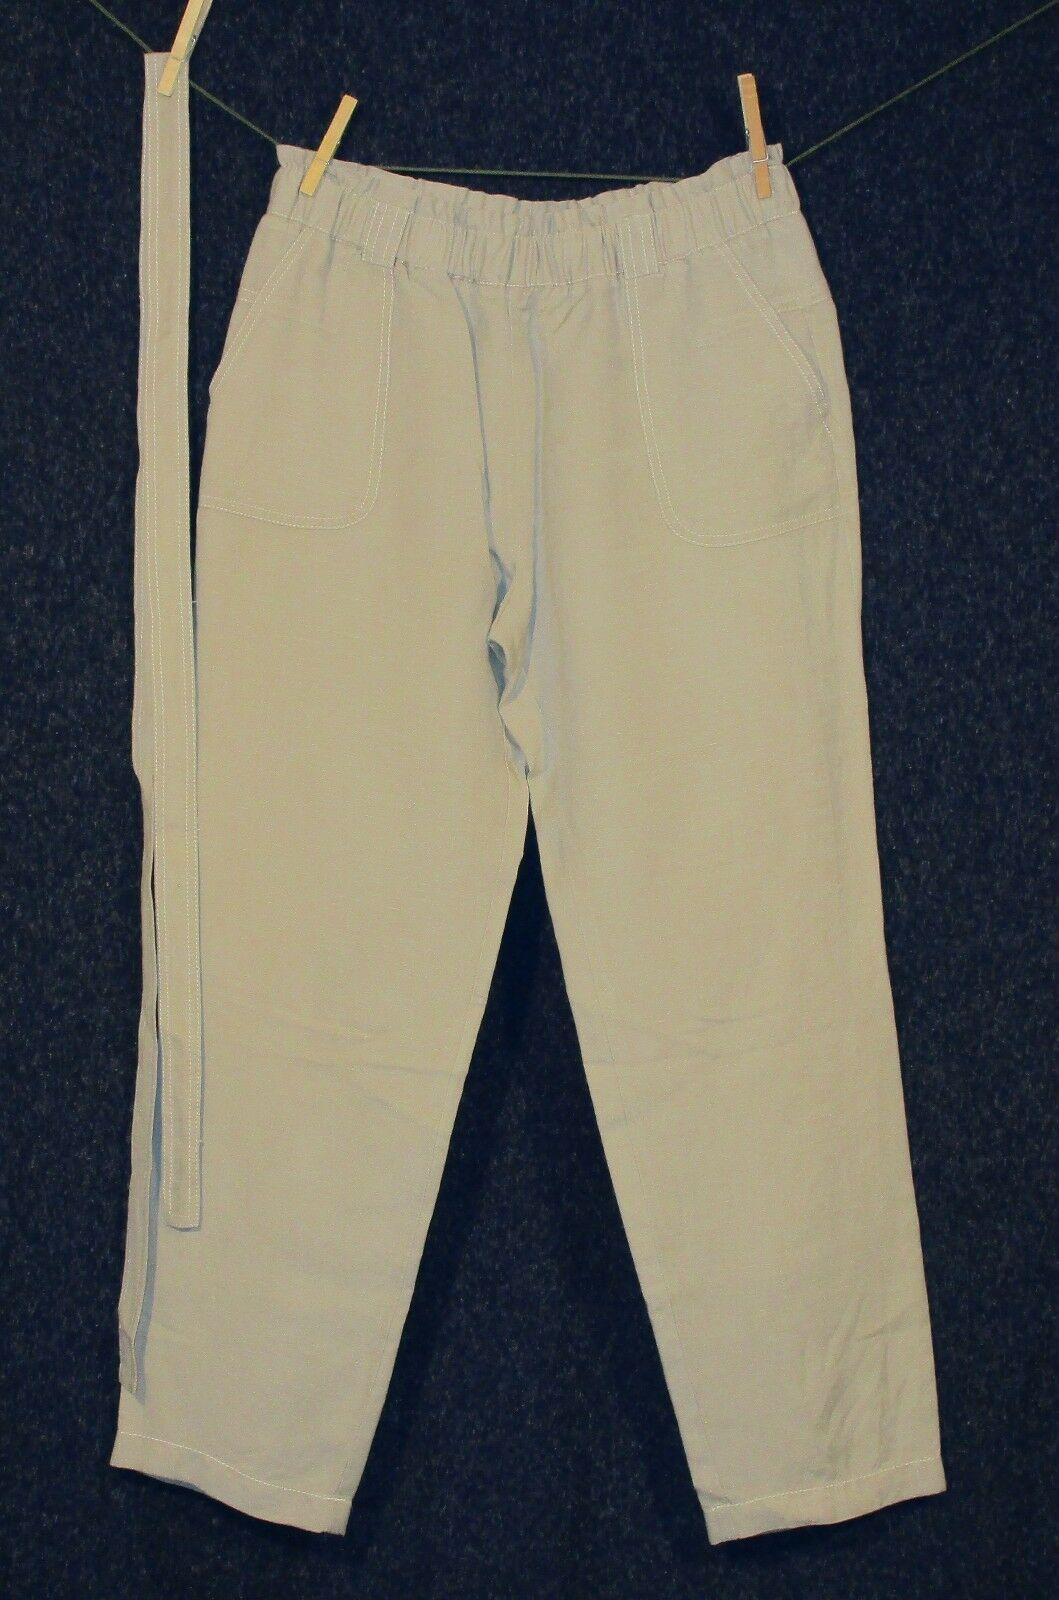 Anthropologie Cartonnier Women's NWOT Size Small Linen Blend Pants